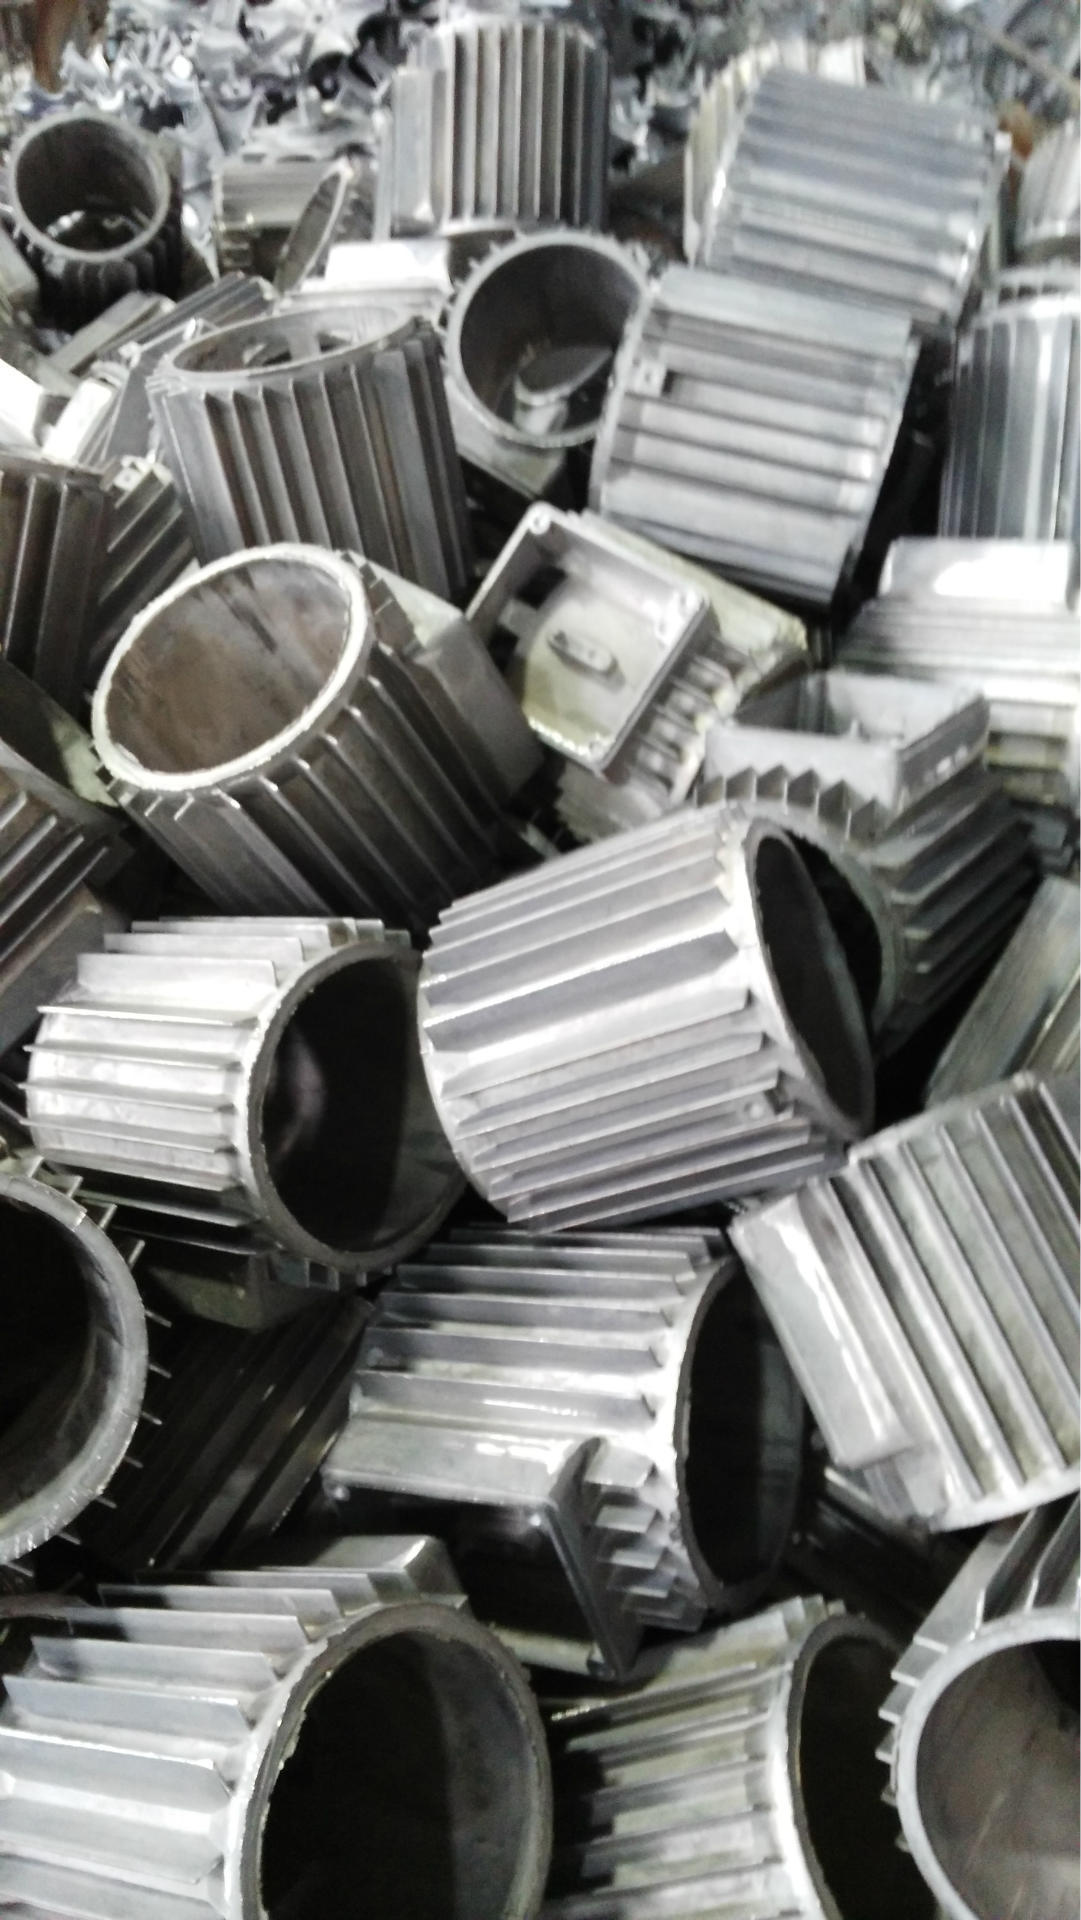 Hợp kim  Mg-Al-Zn alloy, az91d